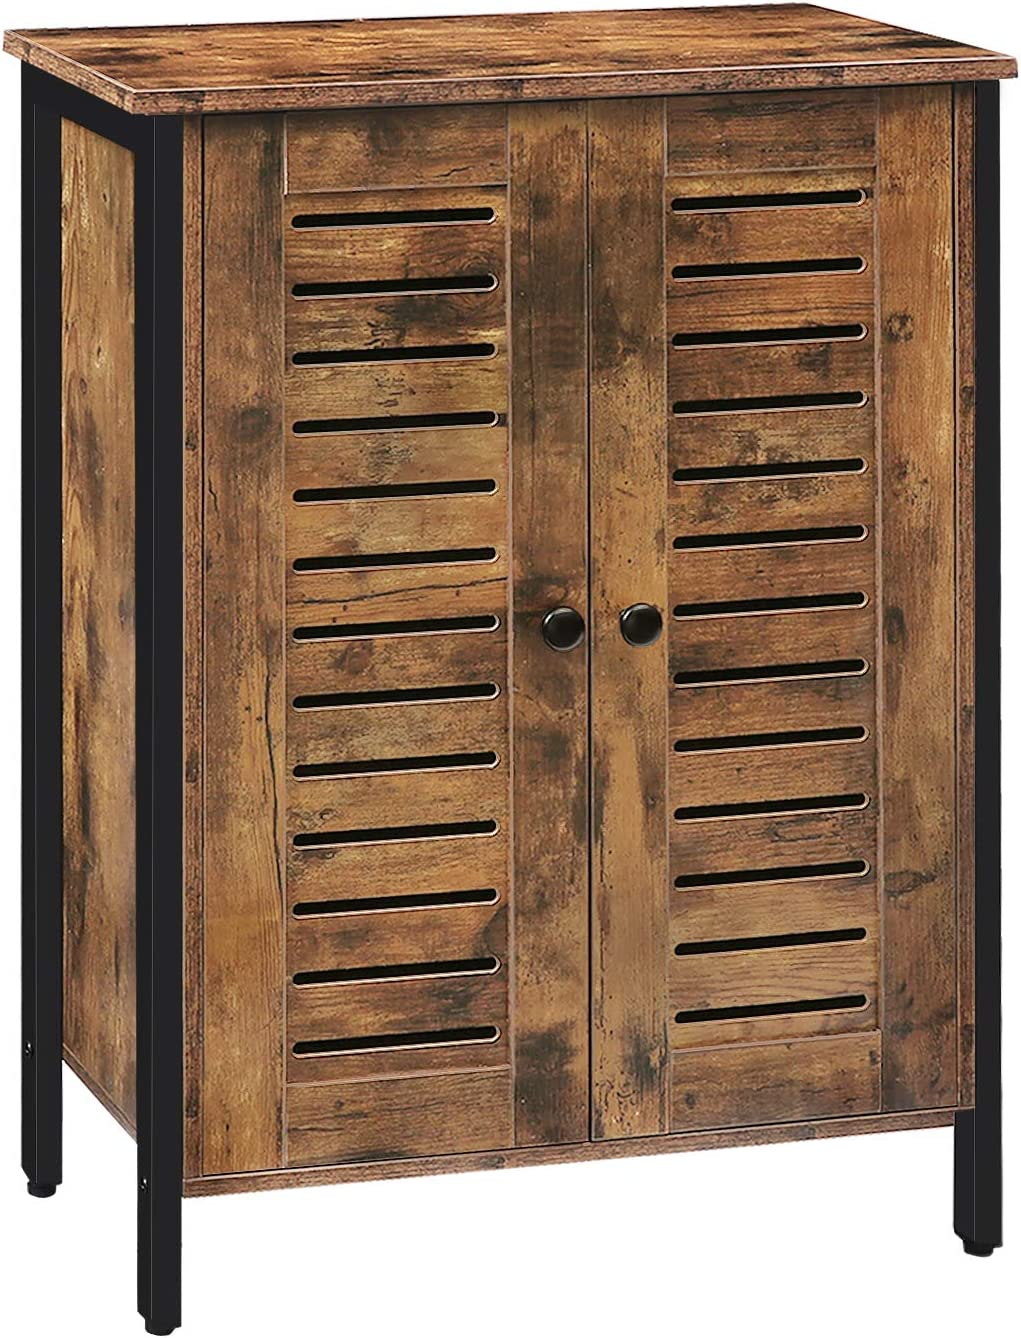 HOOBRO Floor Standing Cabinet, Storage Cabinet with 2 Adjustable Shelves, Accent Cupboard, Sideboard with Louver Doors, for Living Room, Bedroom, Hallway, Kitchen, Industrial, Rustic Brown BF27CW01